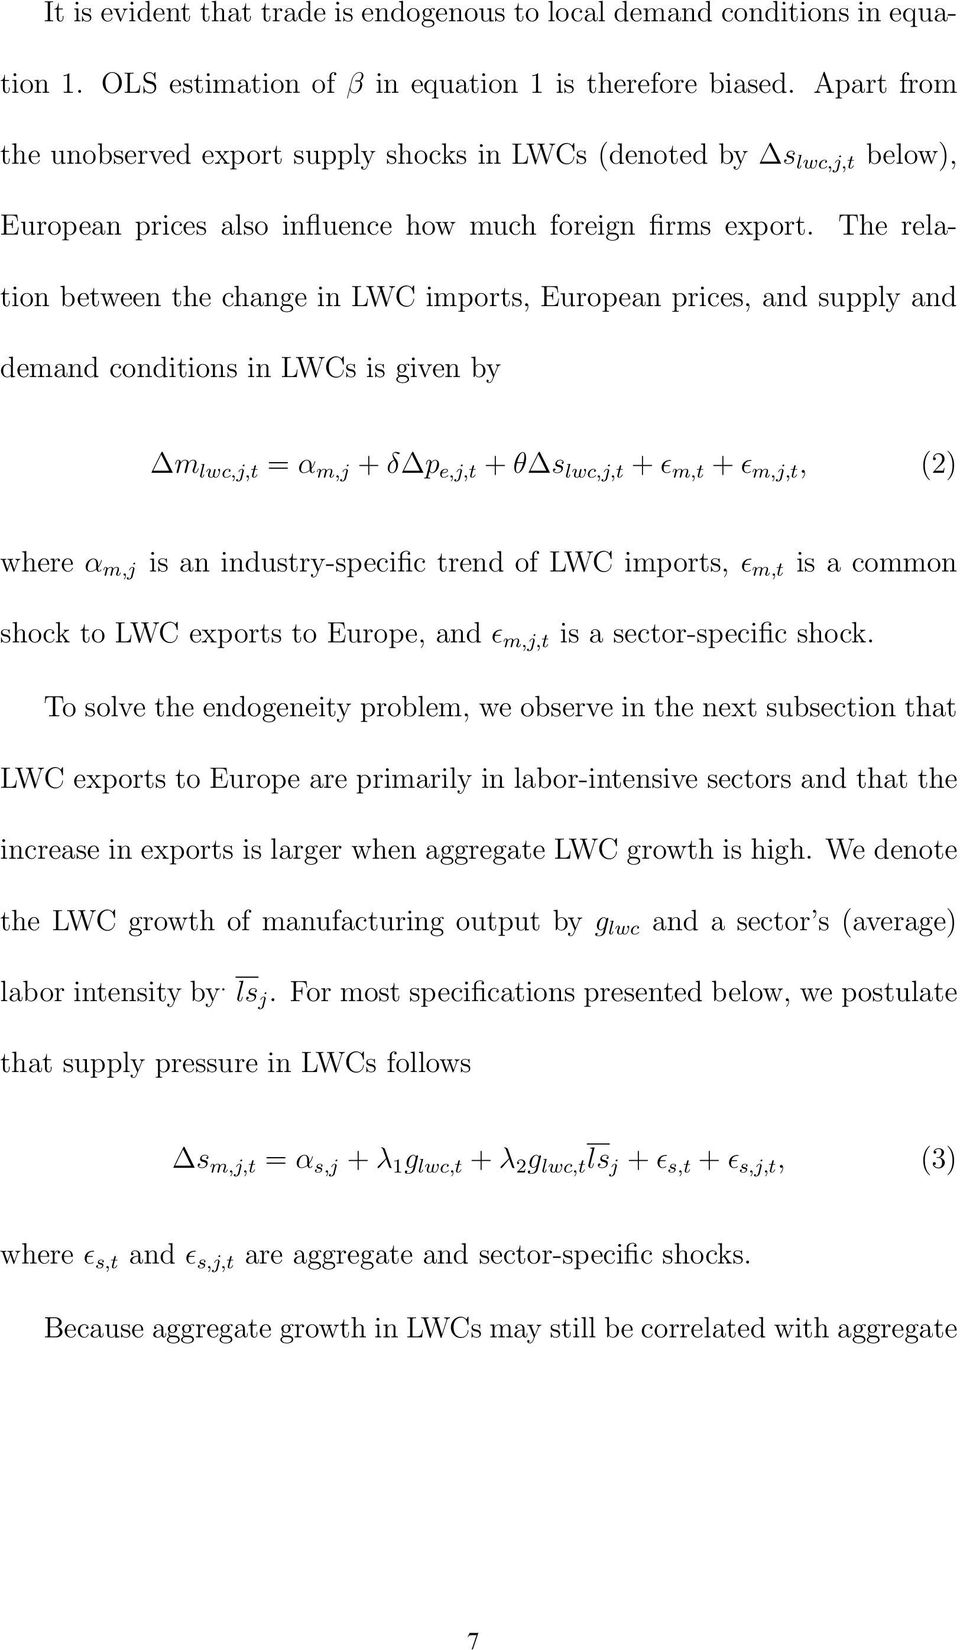 The relation between the change in LWC imports, European prices, and supply and demand conditions in LWCs is given by m lwc,j,t = α m,j + δ p e,j,t + θ s lwc,j,t + ɛ m,t + ɛ m,j,t, (2) where α m,j is